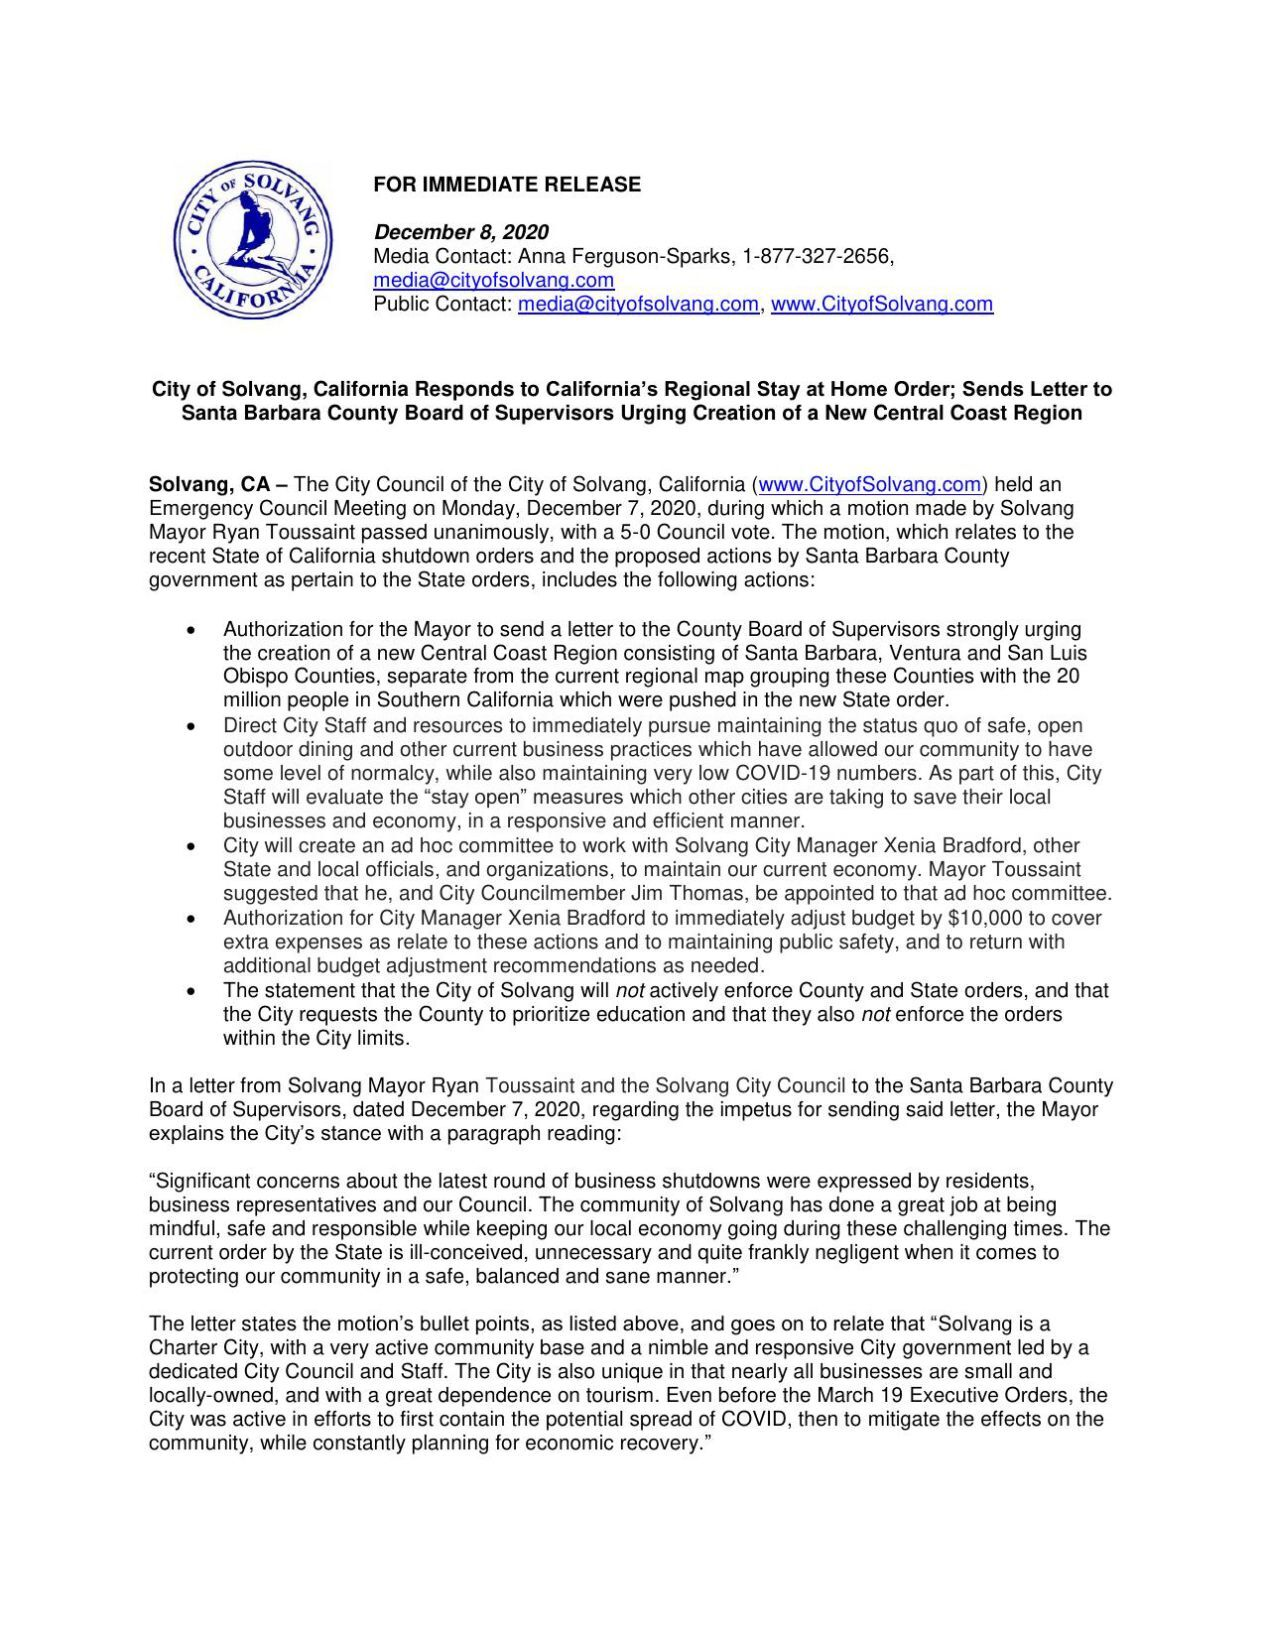 PDF: City of Solvang Responds to California's Regional Stay at Home Order